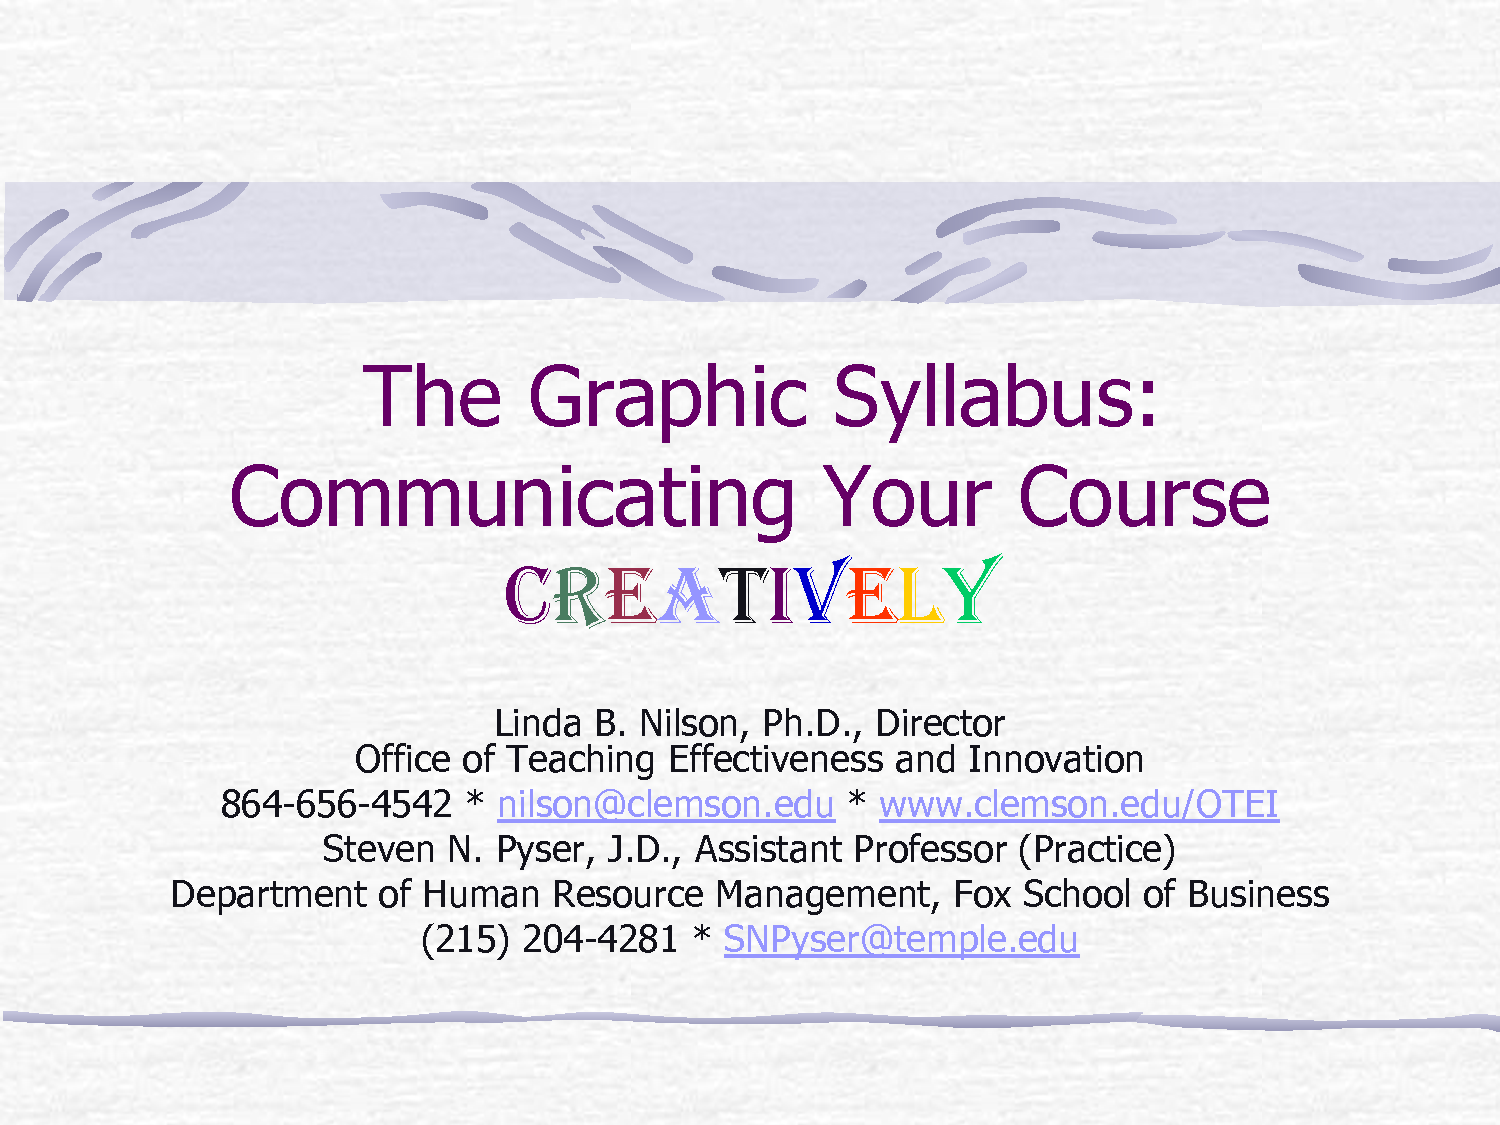 the graphic syllabus fox school of business temple university by